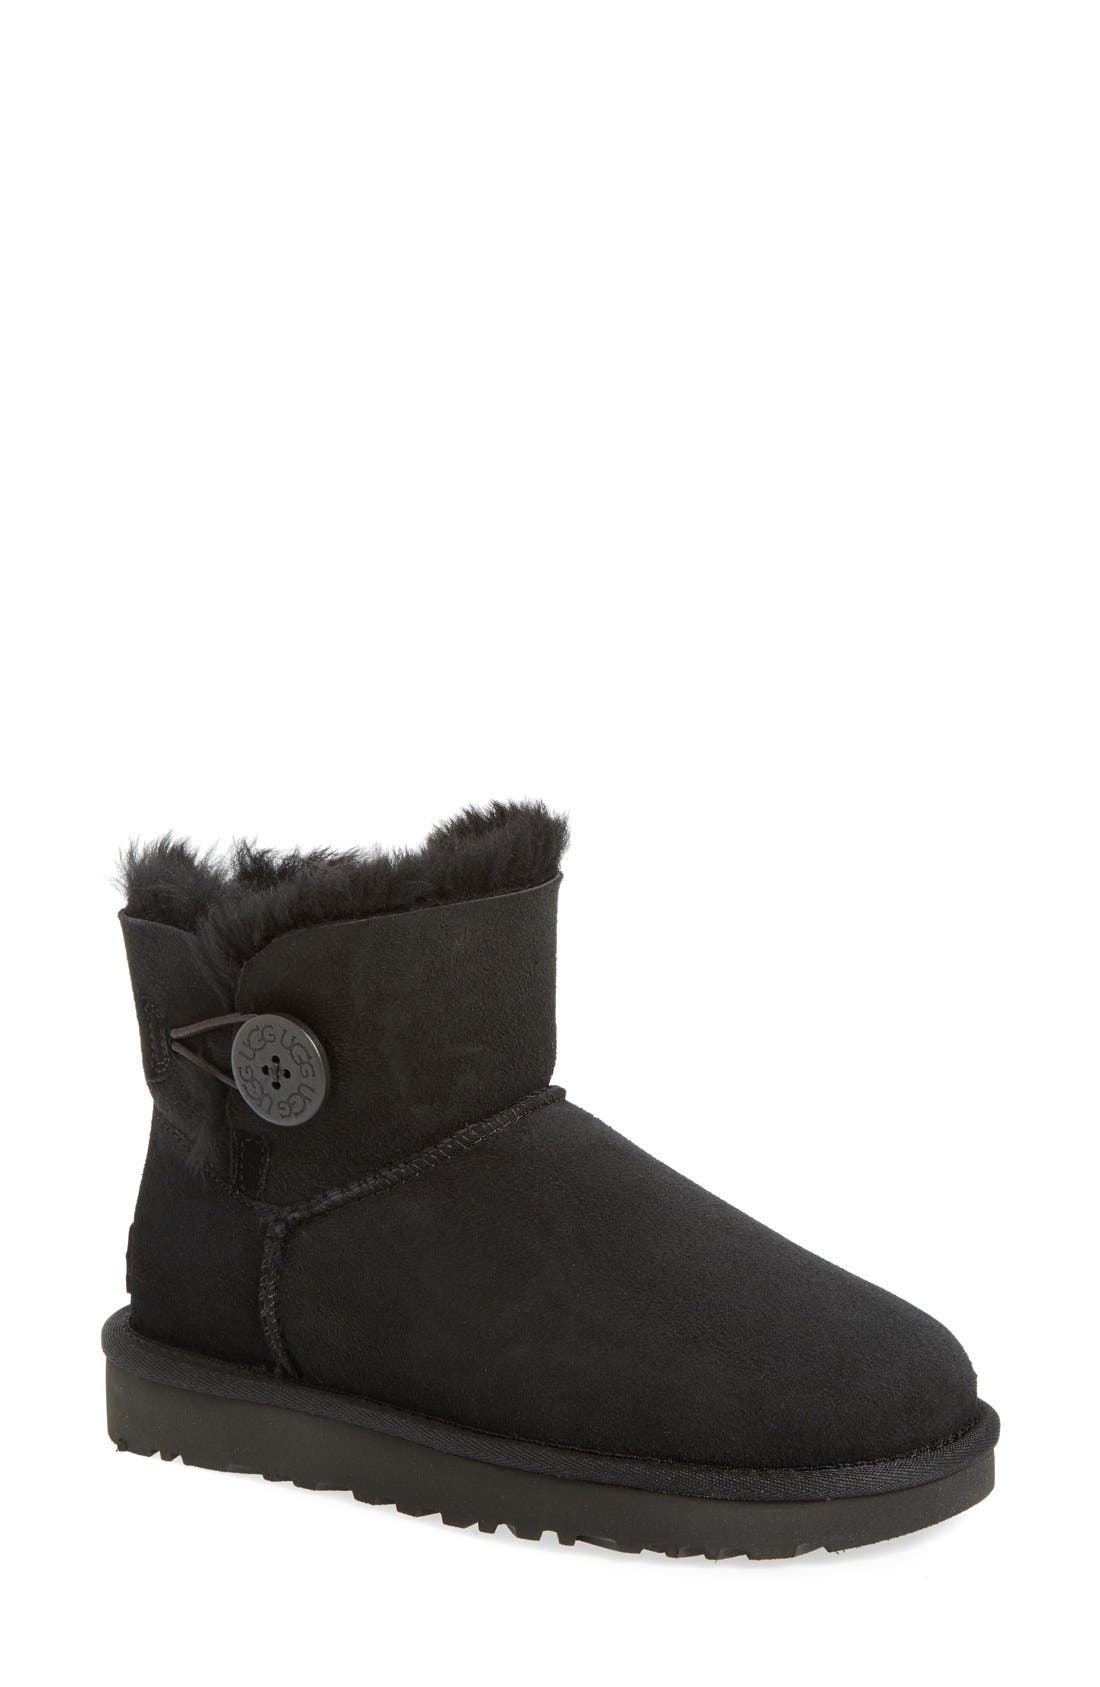 UGG<SUP>®</SUP>, Mini Bailey Button II Genuine Shearling Boot, Main thumbnail 1, color, BLACK SUEDE